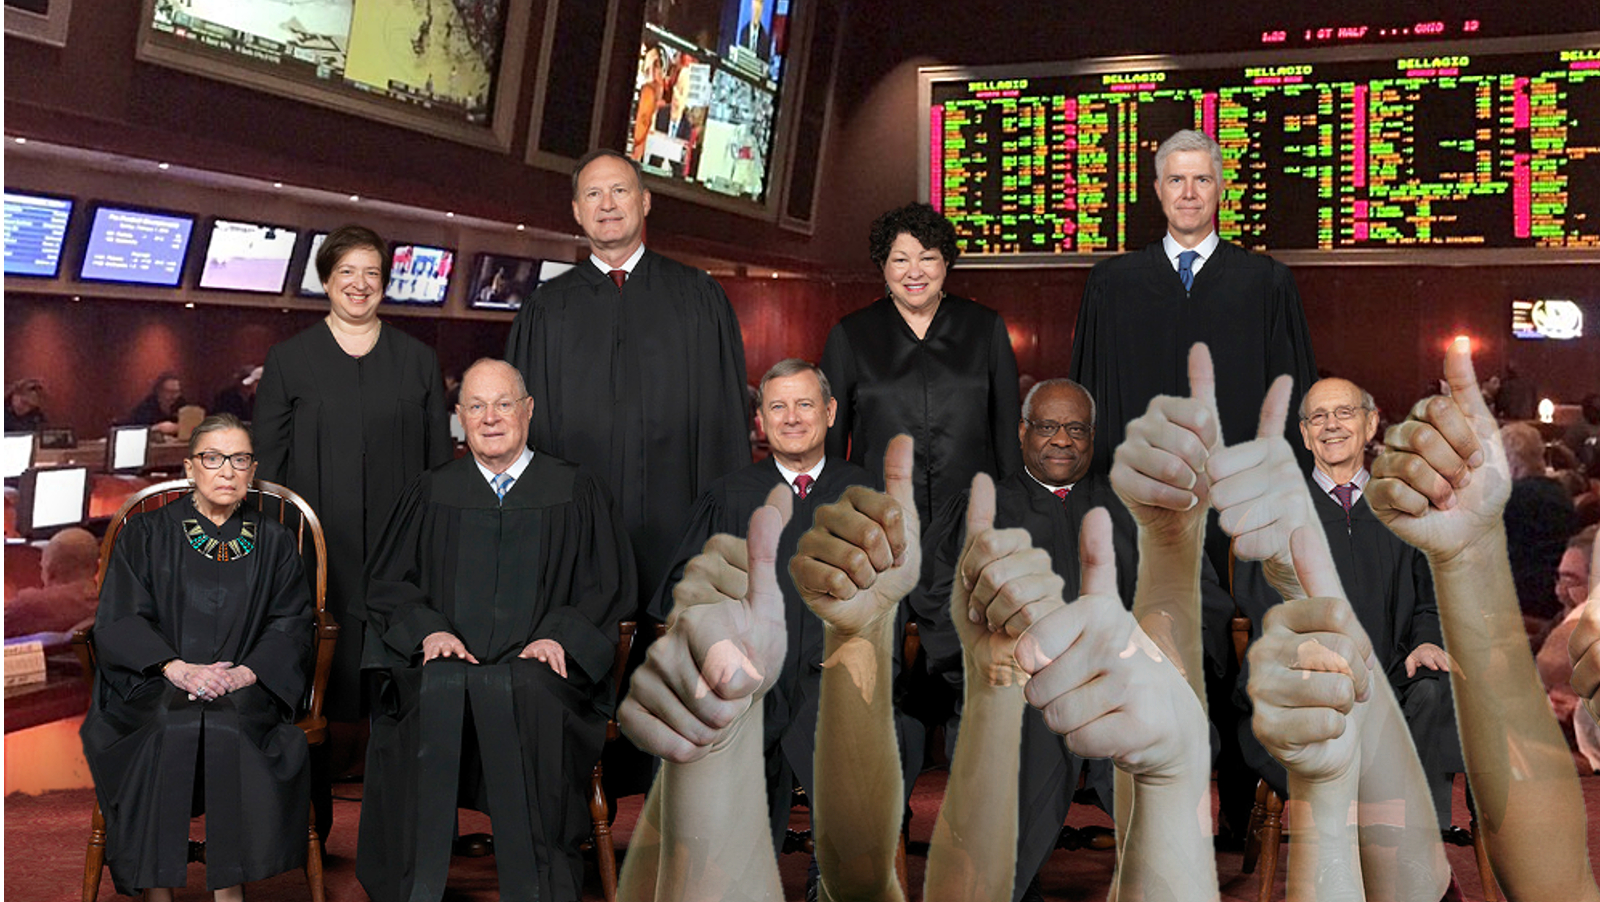 us-supreme-court-sports-betting-ban-unconstitutional